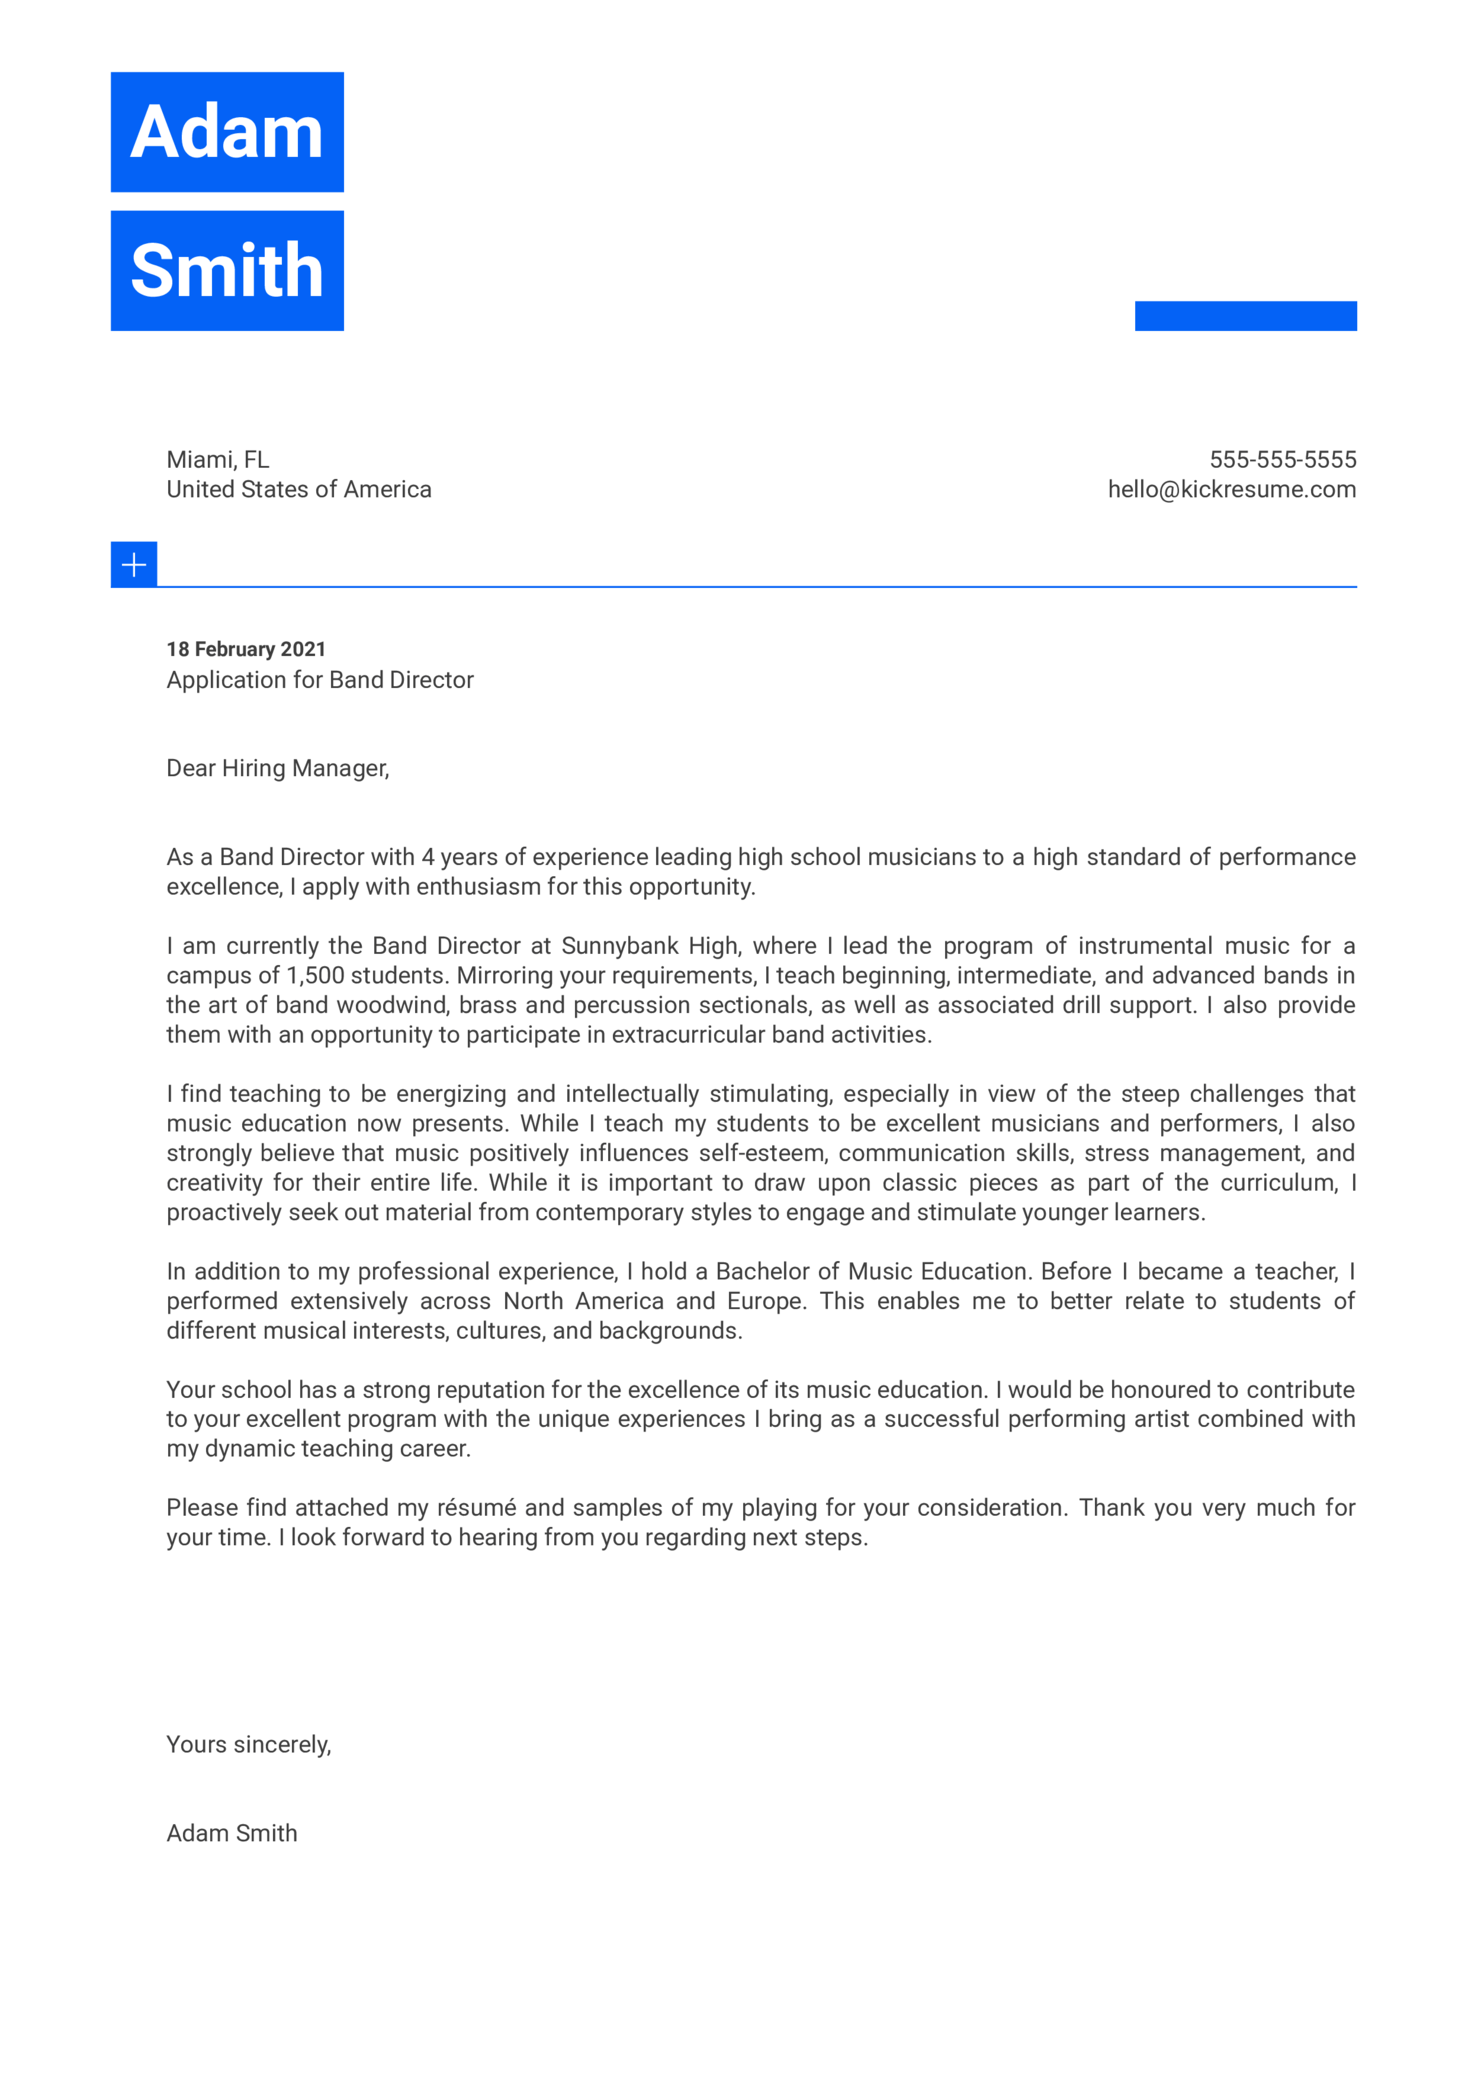 Band Director Cover Letter Sample (Part 1)